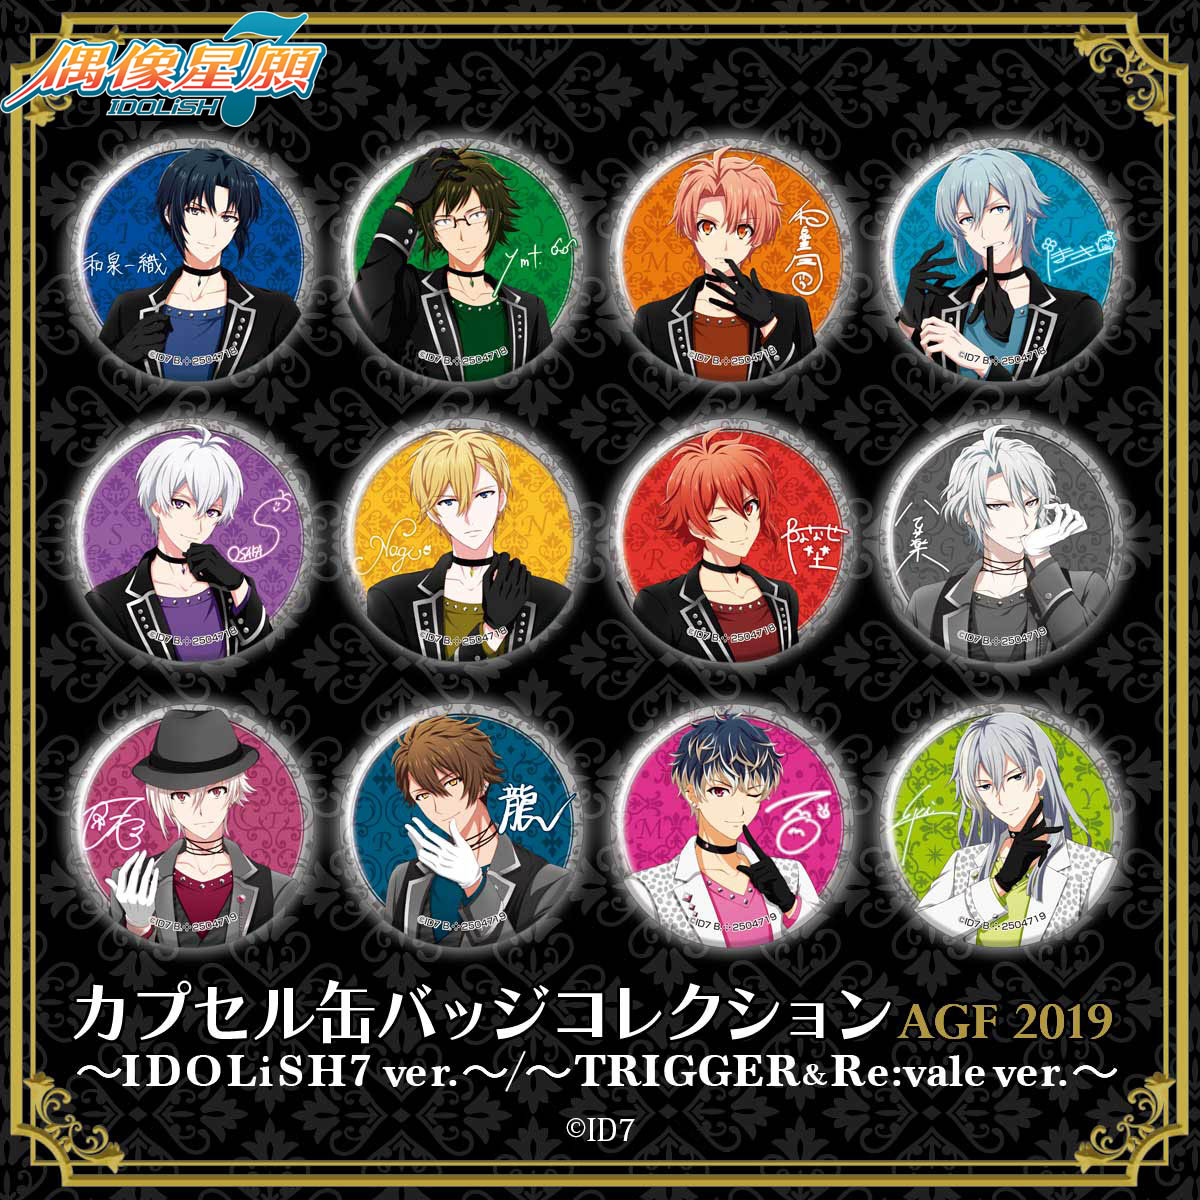 CAPSULE CAN BADGE COLLECTION~AGF2019 IDOLiSH7 ver.~